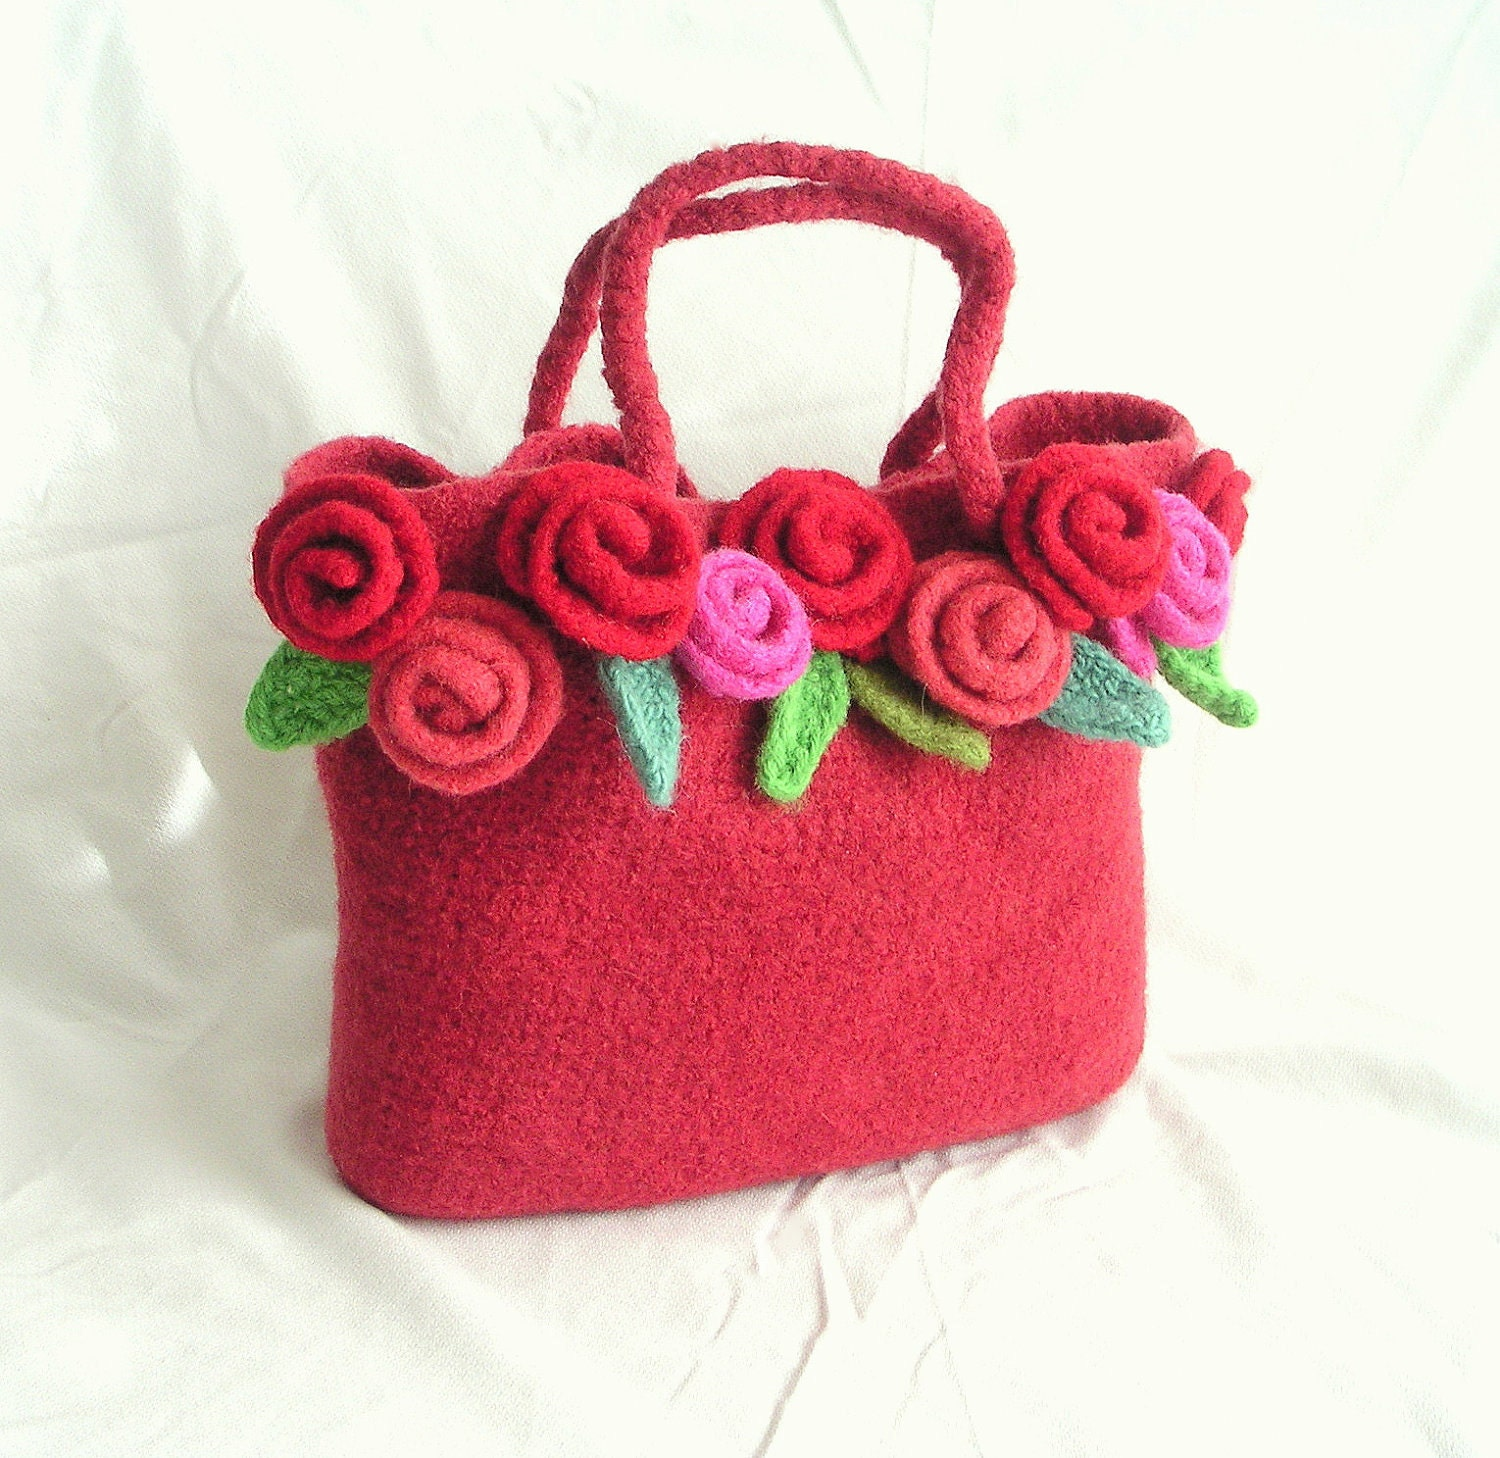 Easy Felted Crochet Bag Pattern : Warcraft how to yarn over crochet ~ jonson making some ...